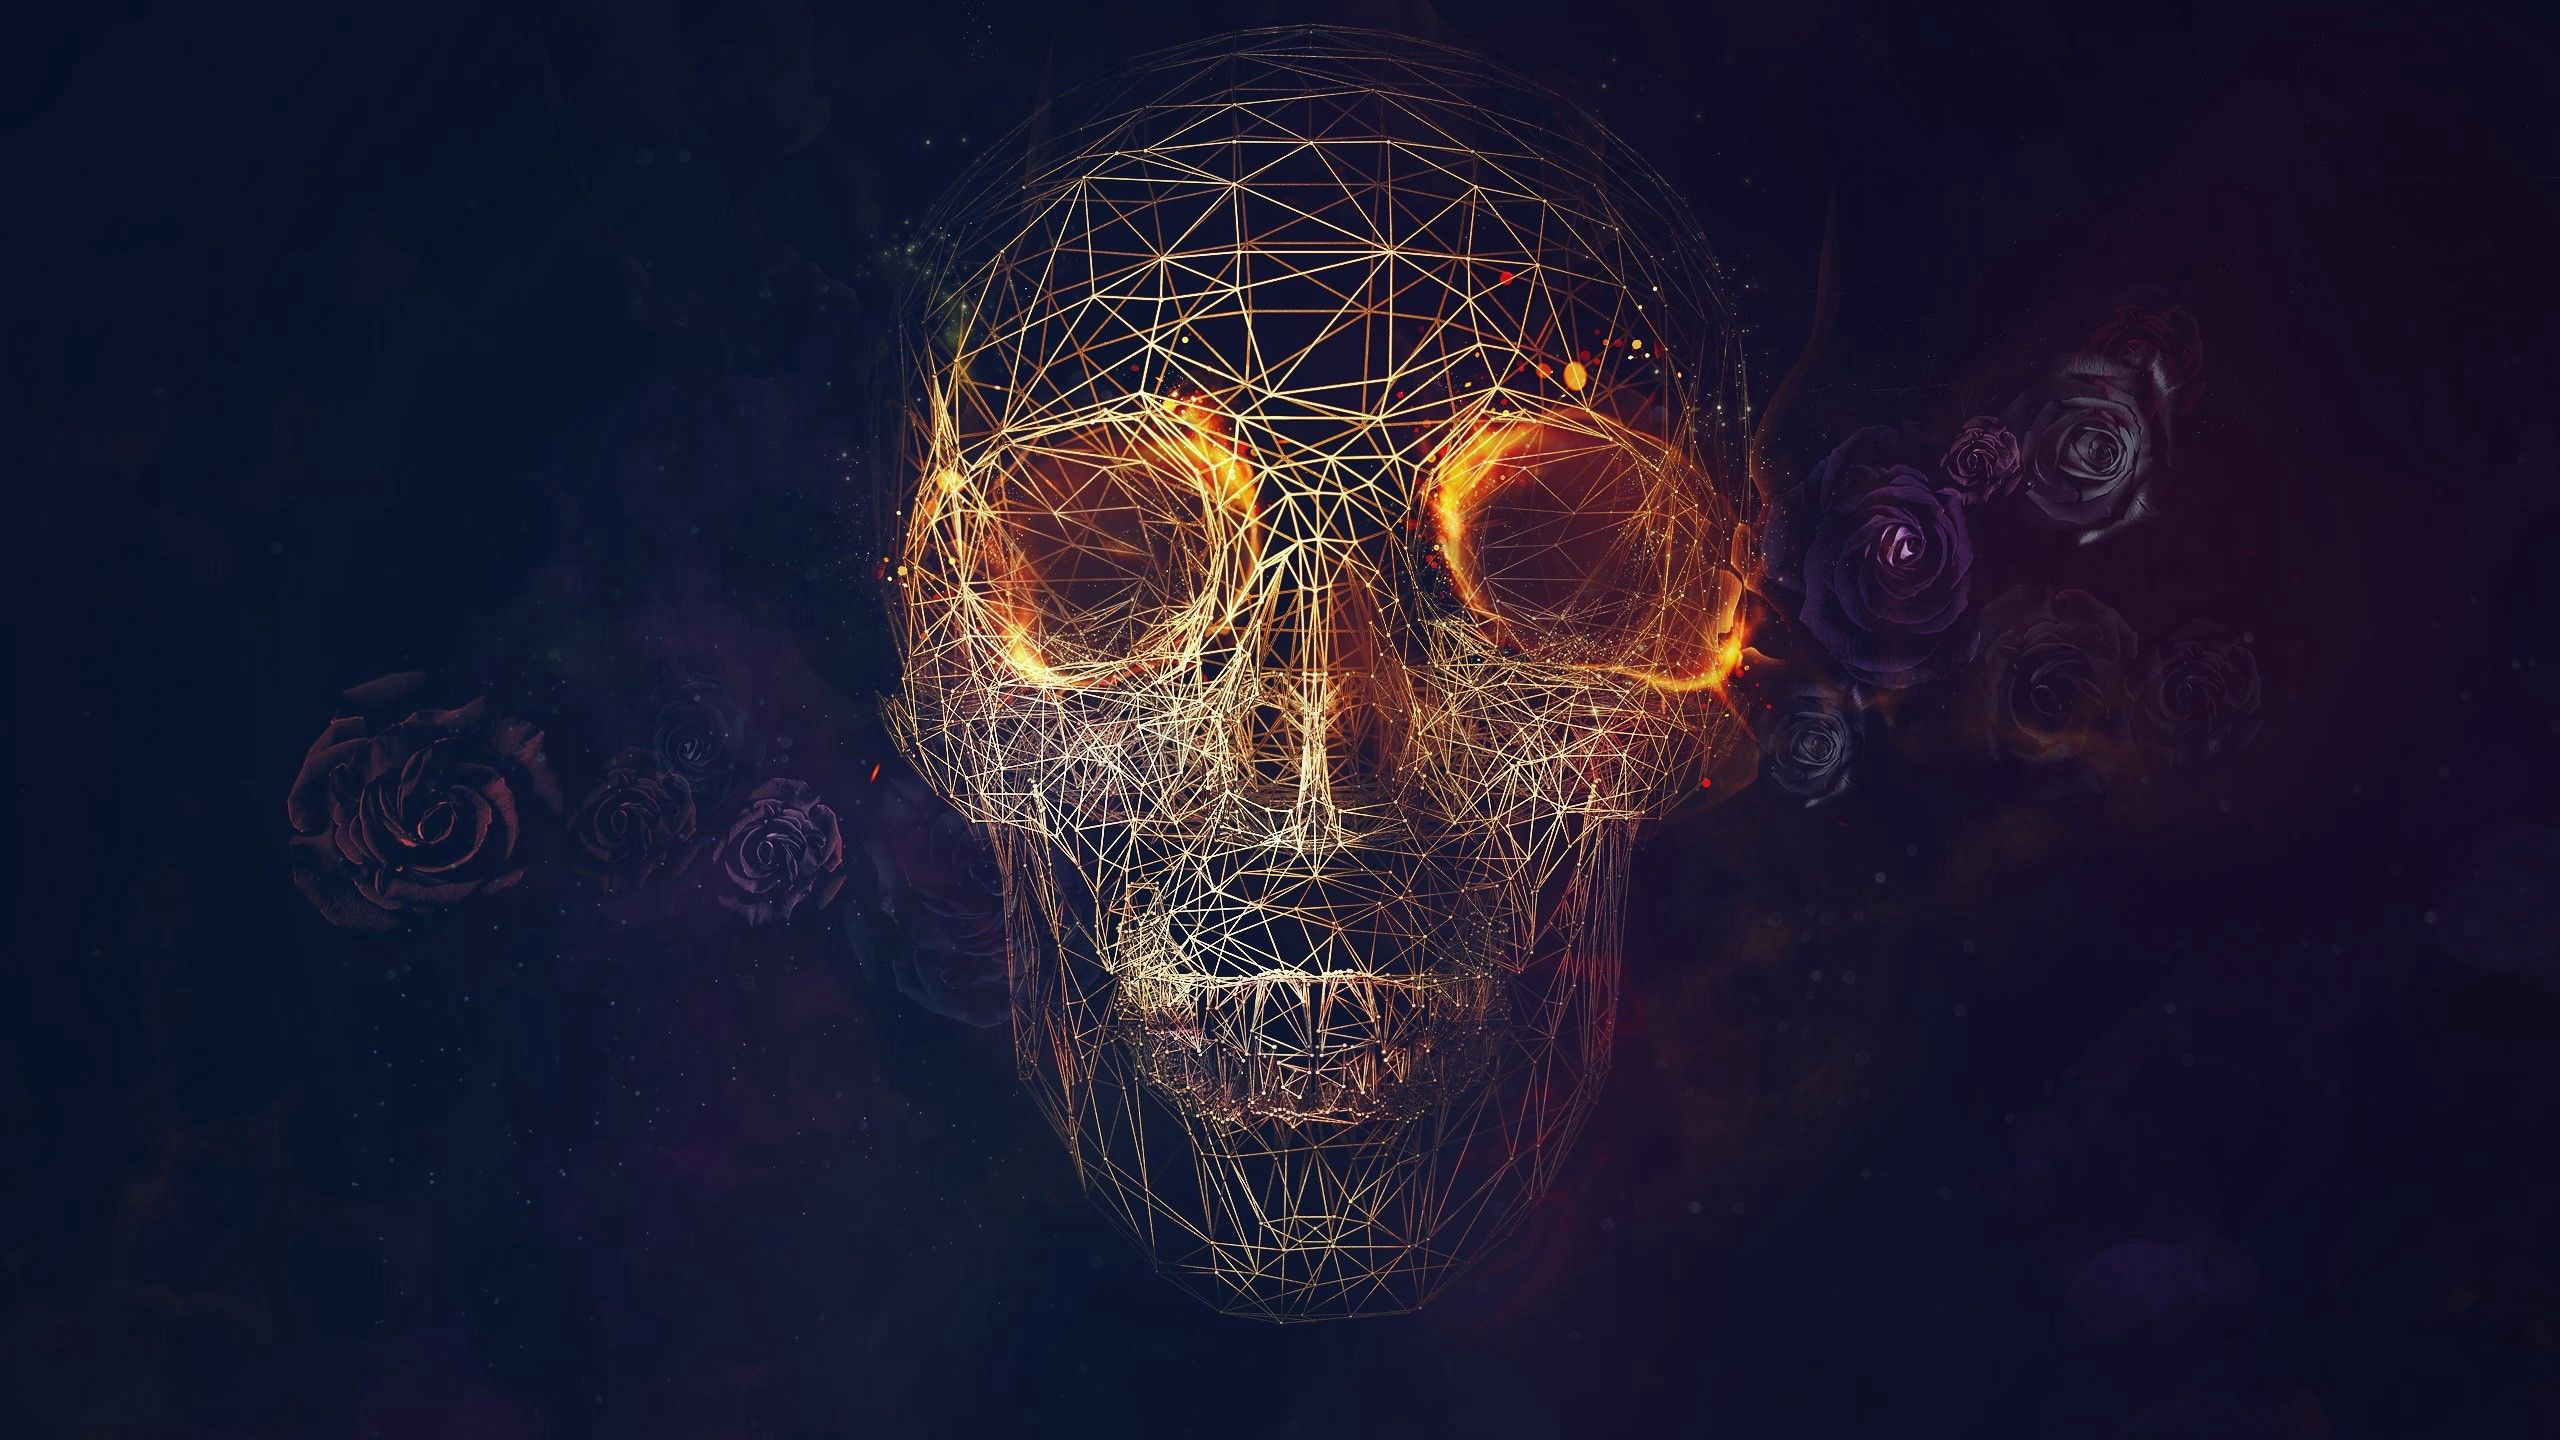 82726 download wallpaper Abstract, Skull, Lines, Geometry, Roses screensavers and pictures for free